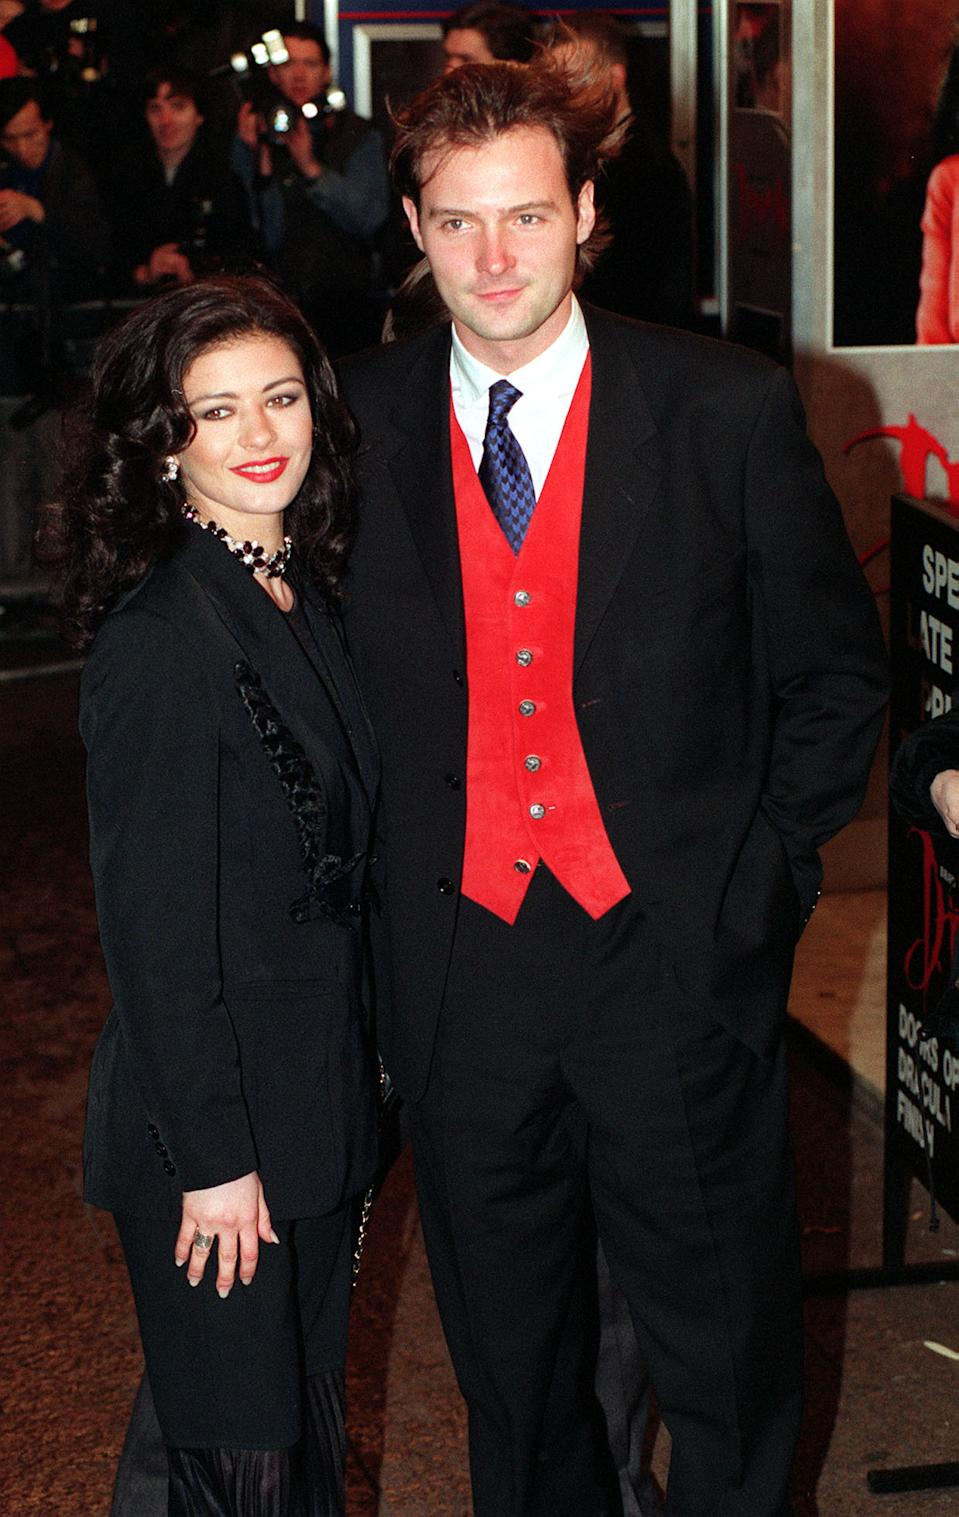 Actress Catherine Zeta Jone arrives with BBC's Blue Peter presenter John Leslie for the celebrity premiere of Bram Stoker's Dracula, directed by Francis Ford Coppola, at the Odeon Leicester Square cinema in London. (Photo by Fiona Hanson - PA Images/PA Images via Getty Images)